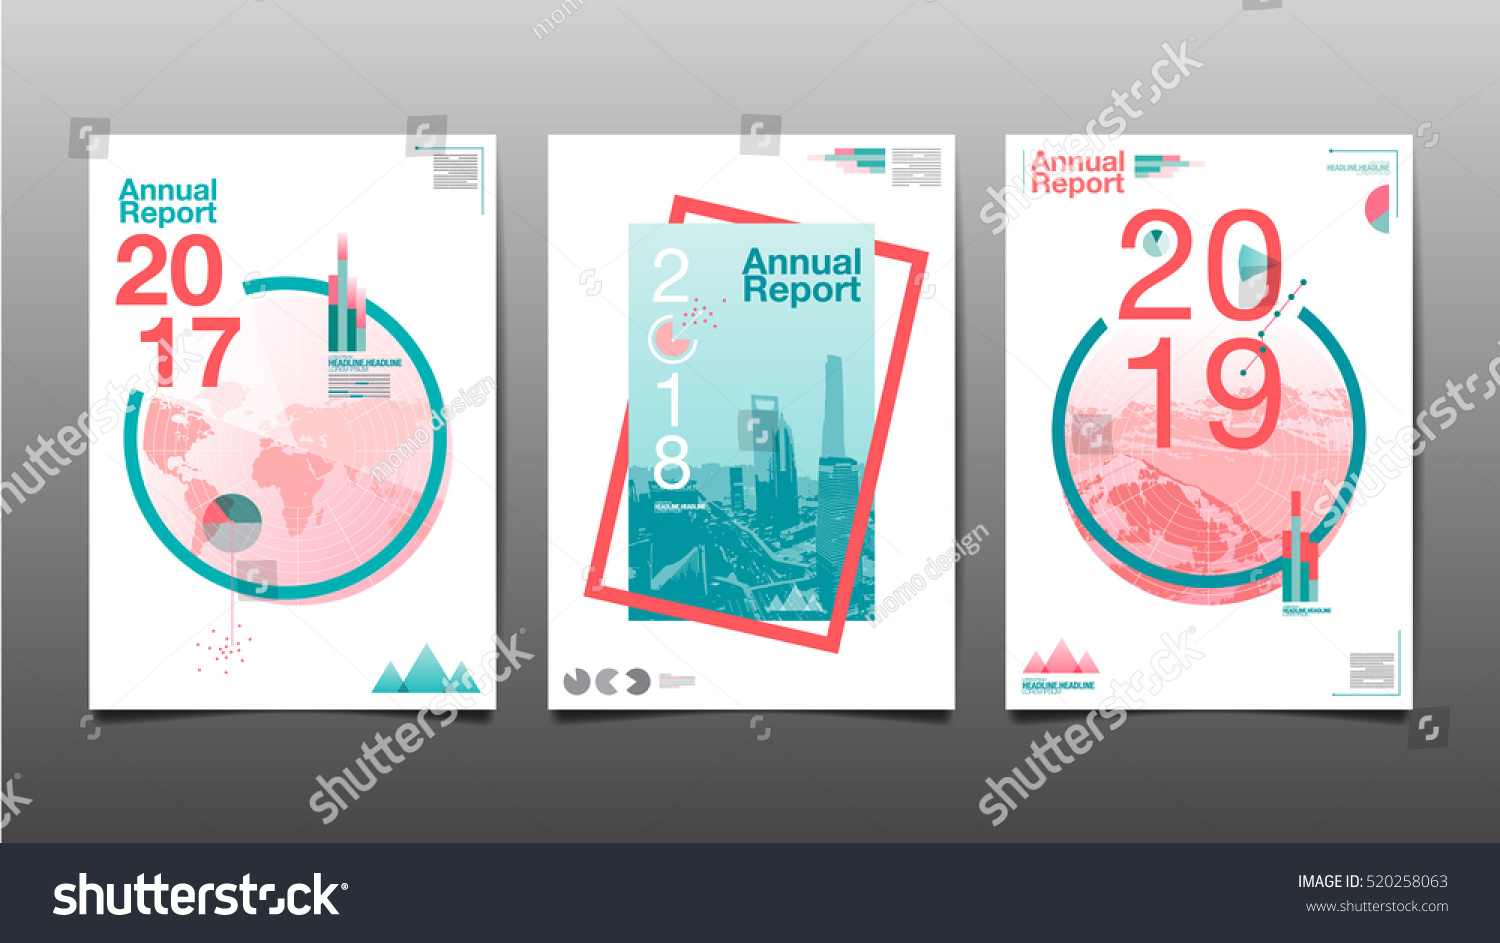 Annual Report Book Cover Design ~ Annual report future business template layout